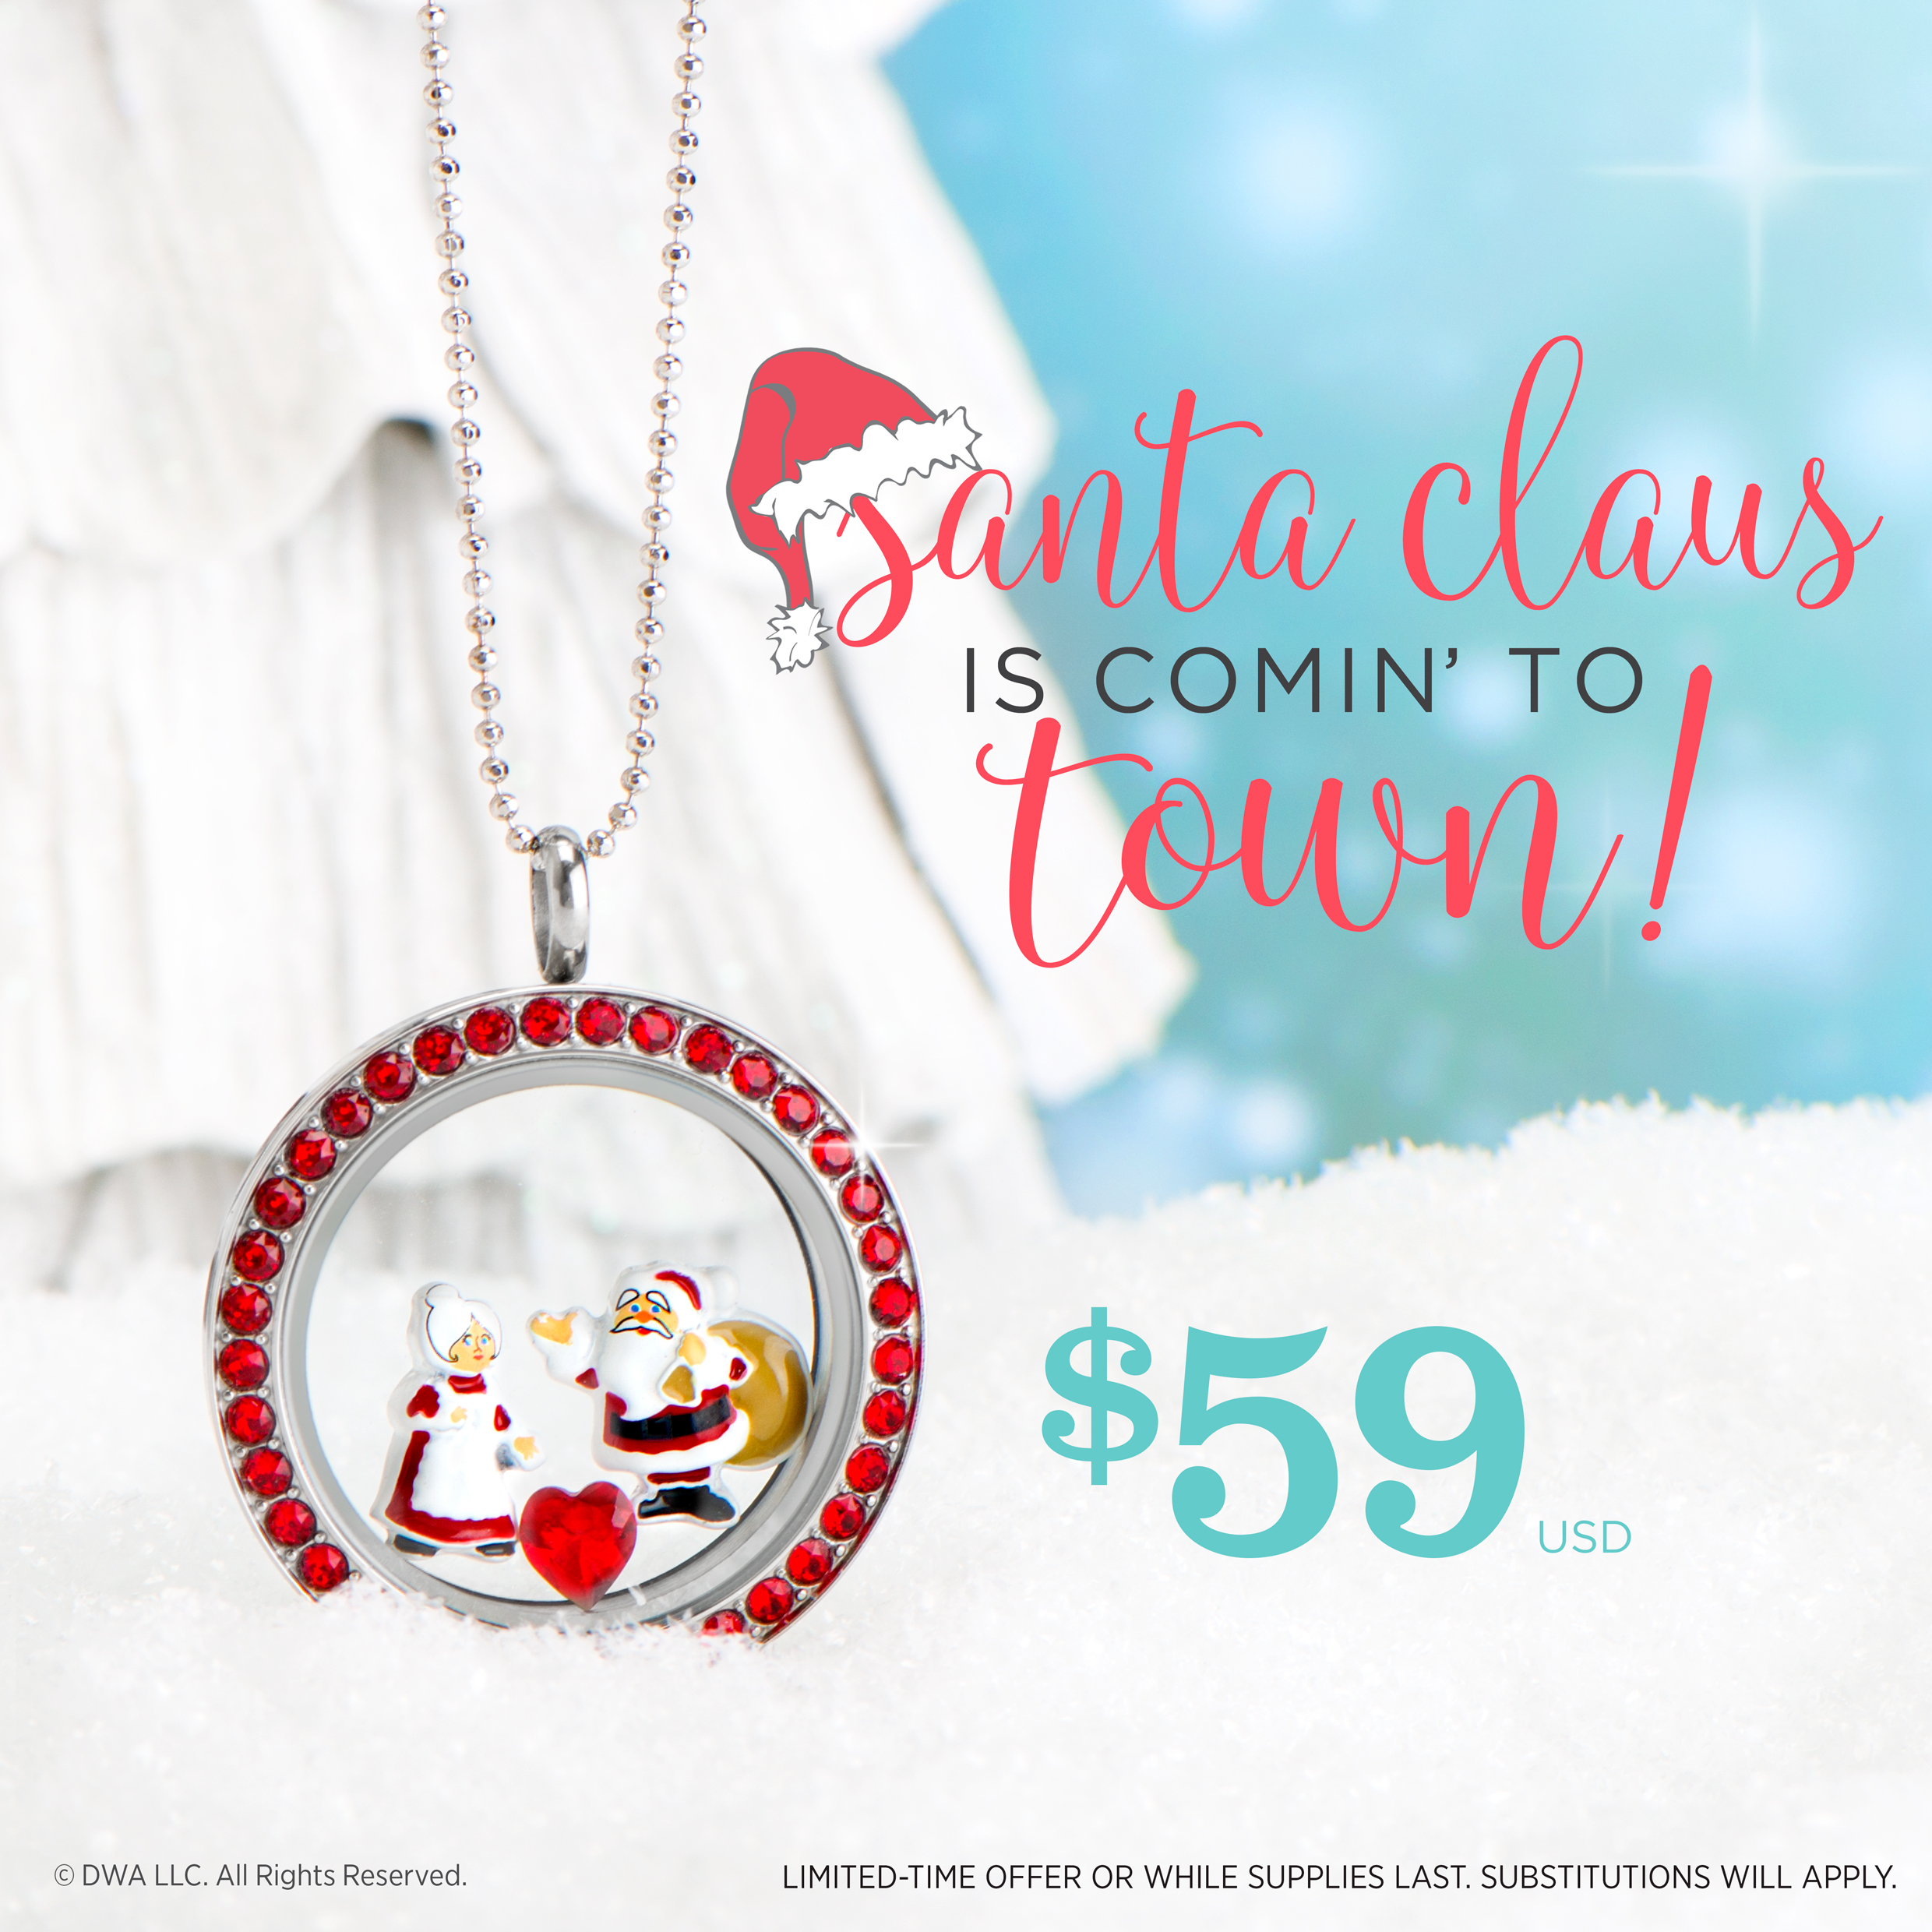 New limited time holiday jewelry coming to town free shipping us httpscdnorigamiowldrlresource0793en usg jeuxipadfo Gallery